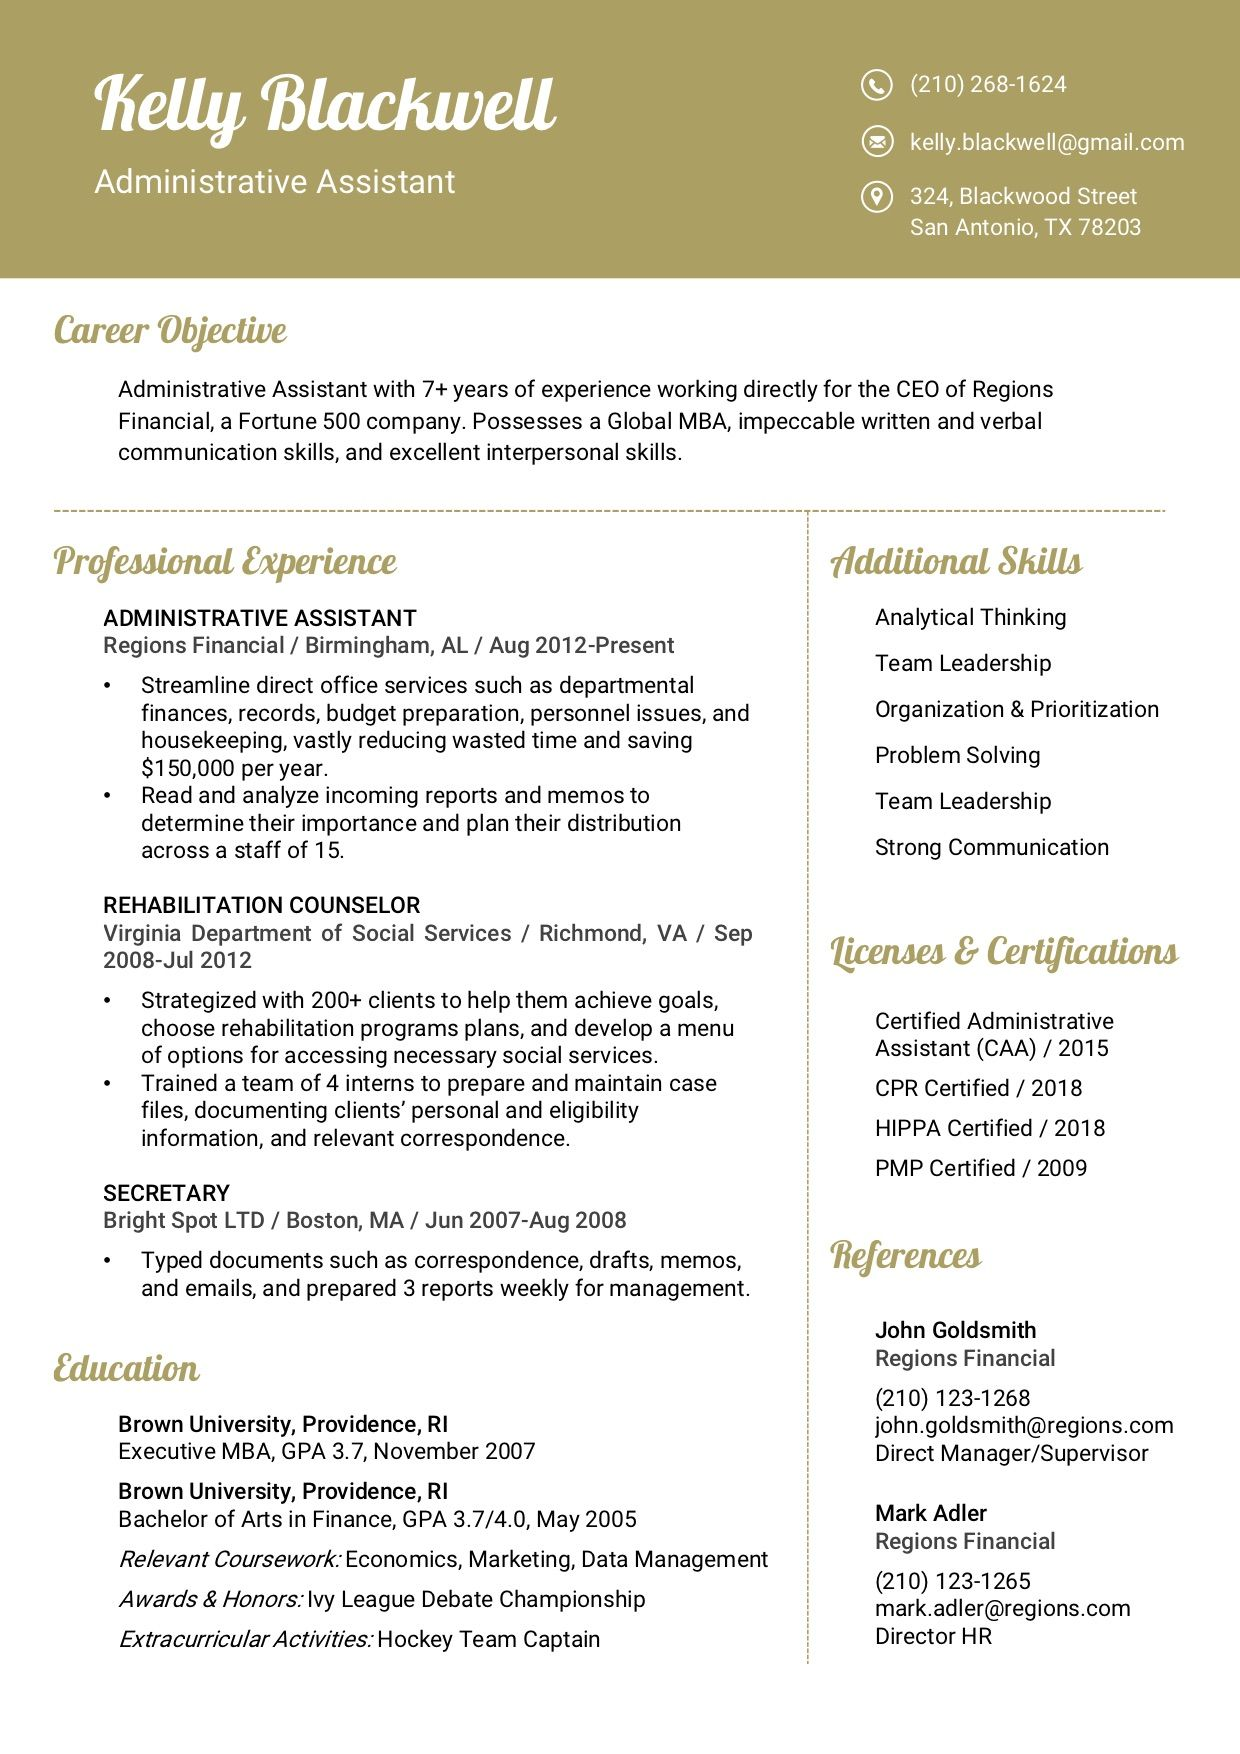 Resume Template 8A RC Verbal communication skills